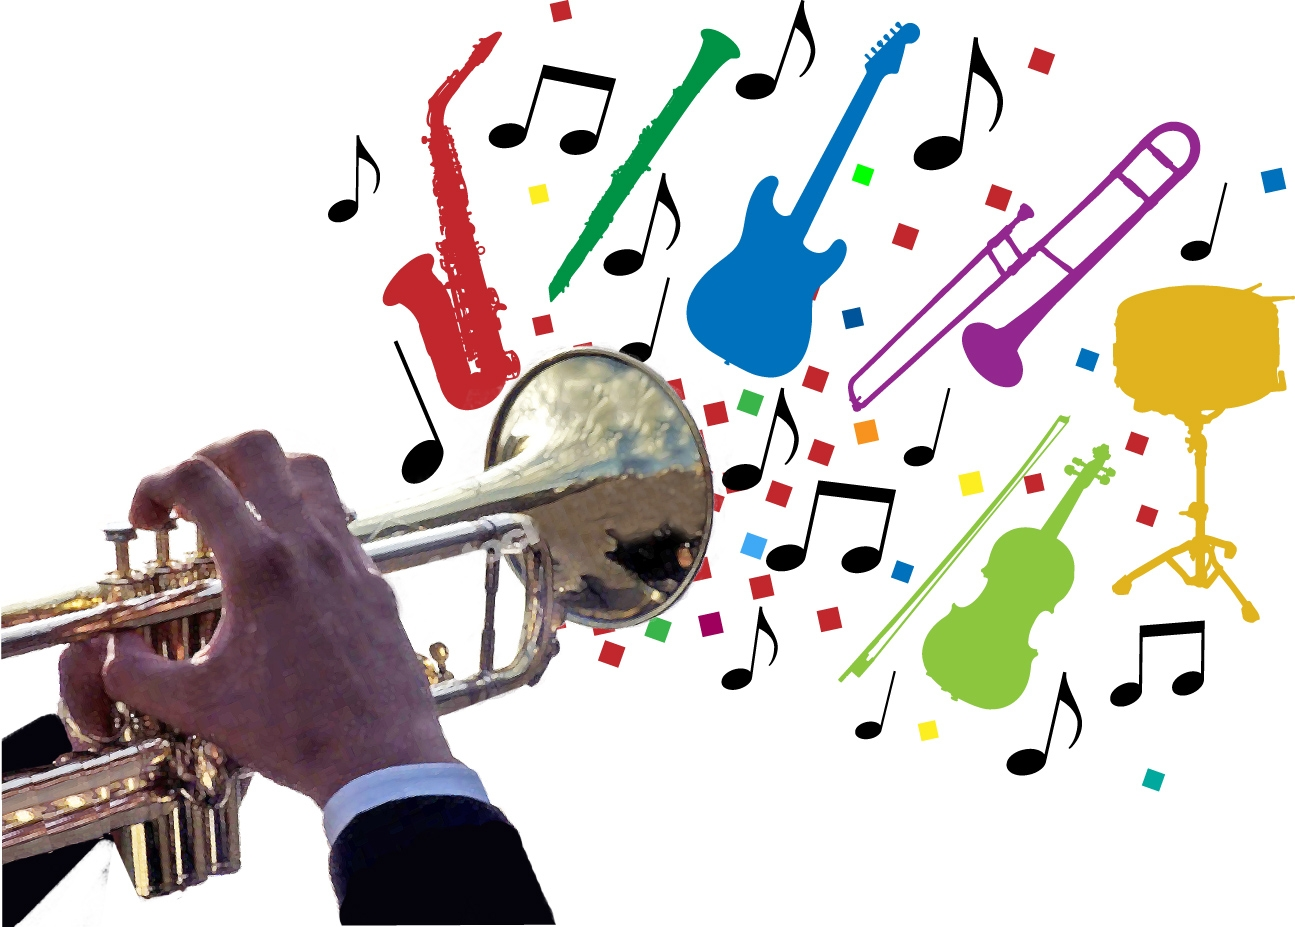 Free jazz big band clipart transparent background graphic black and white stock 5MBS graphic black and white stock